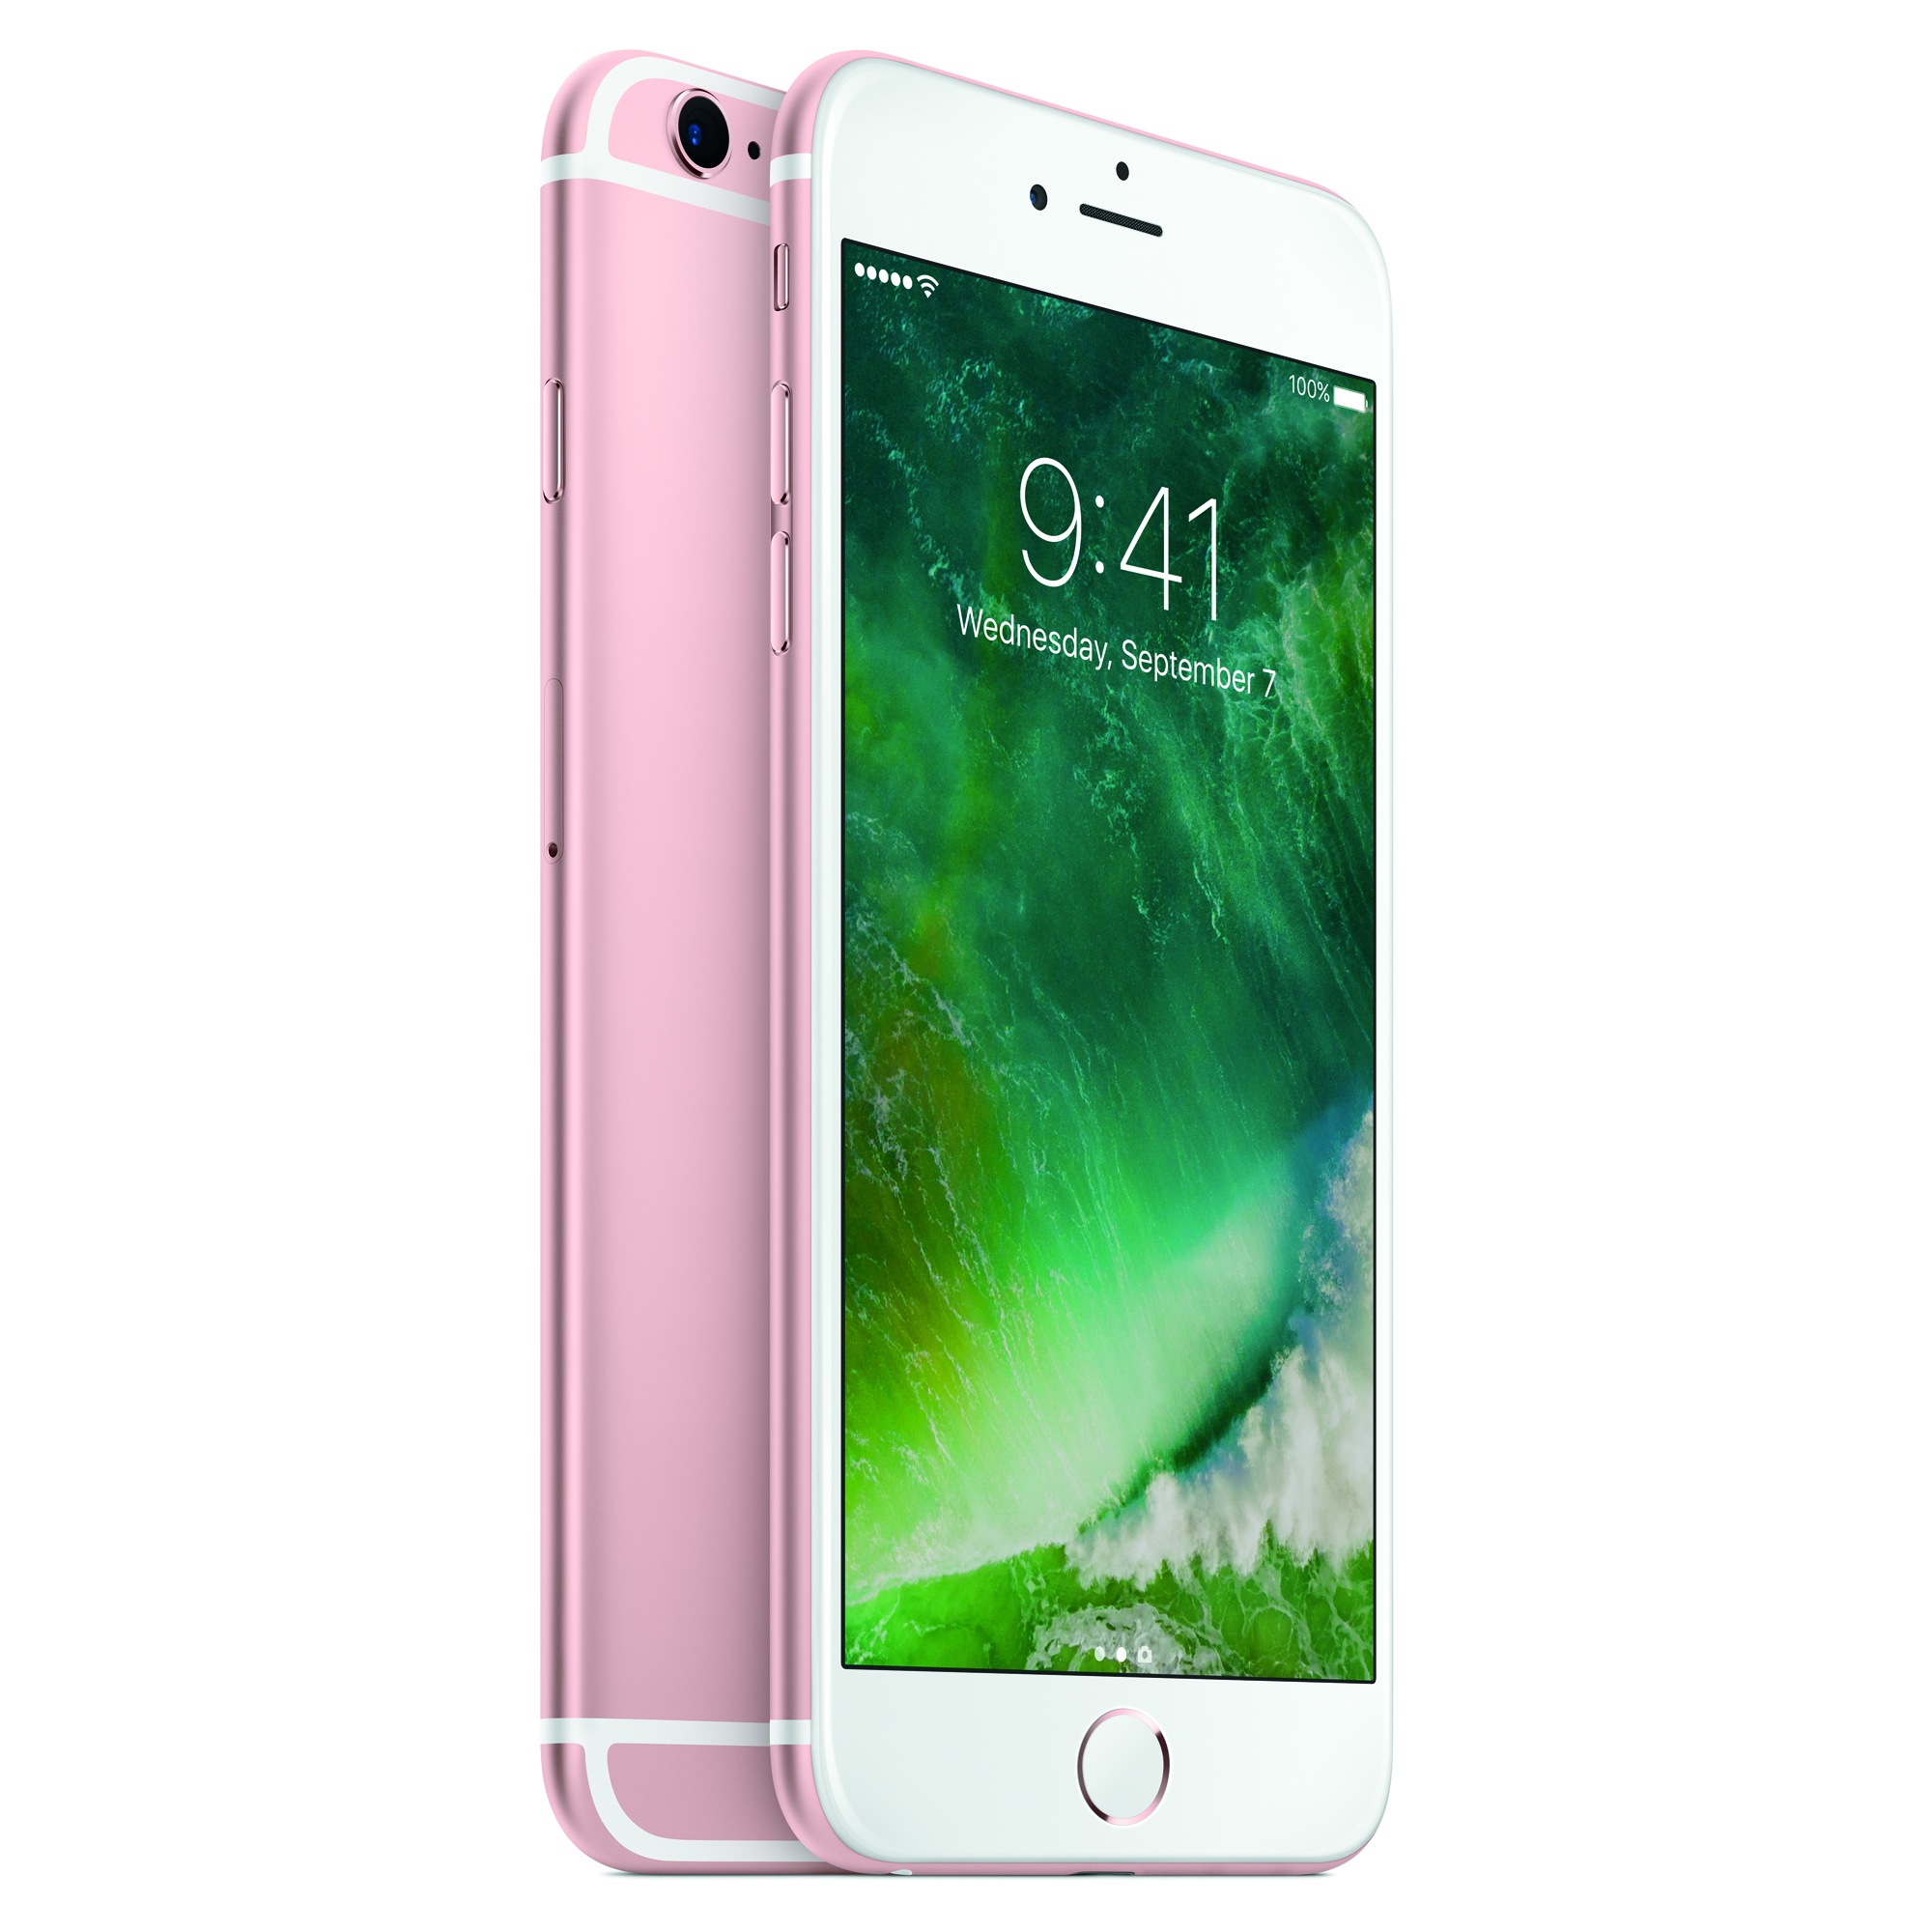 Walmart Family Mobile Apple iPhone 6s Plus with 32GB Prepaid Smartphone, Rose Gold